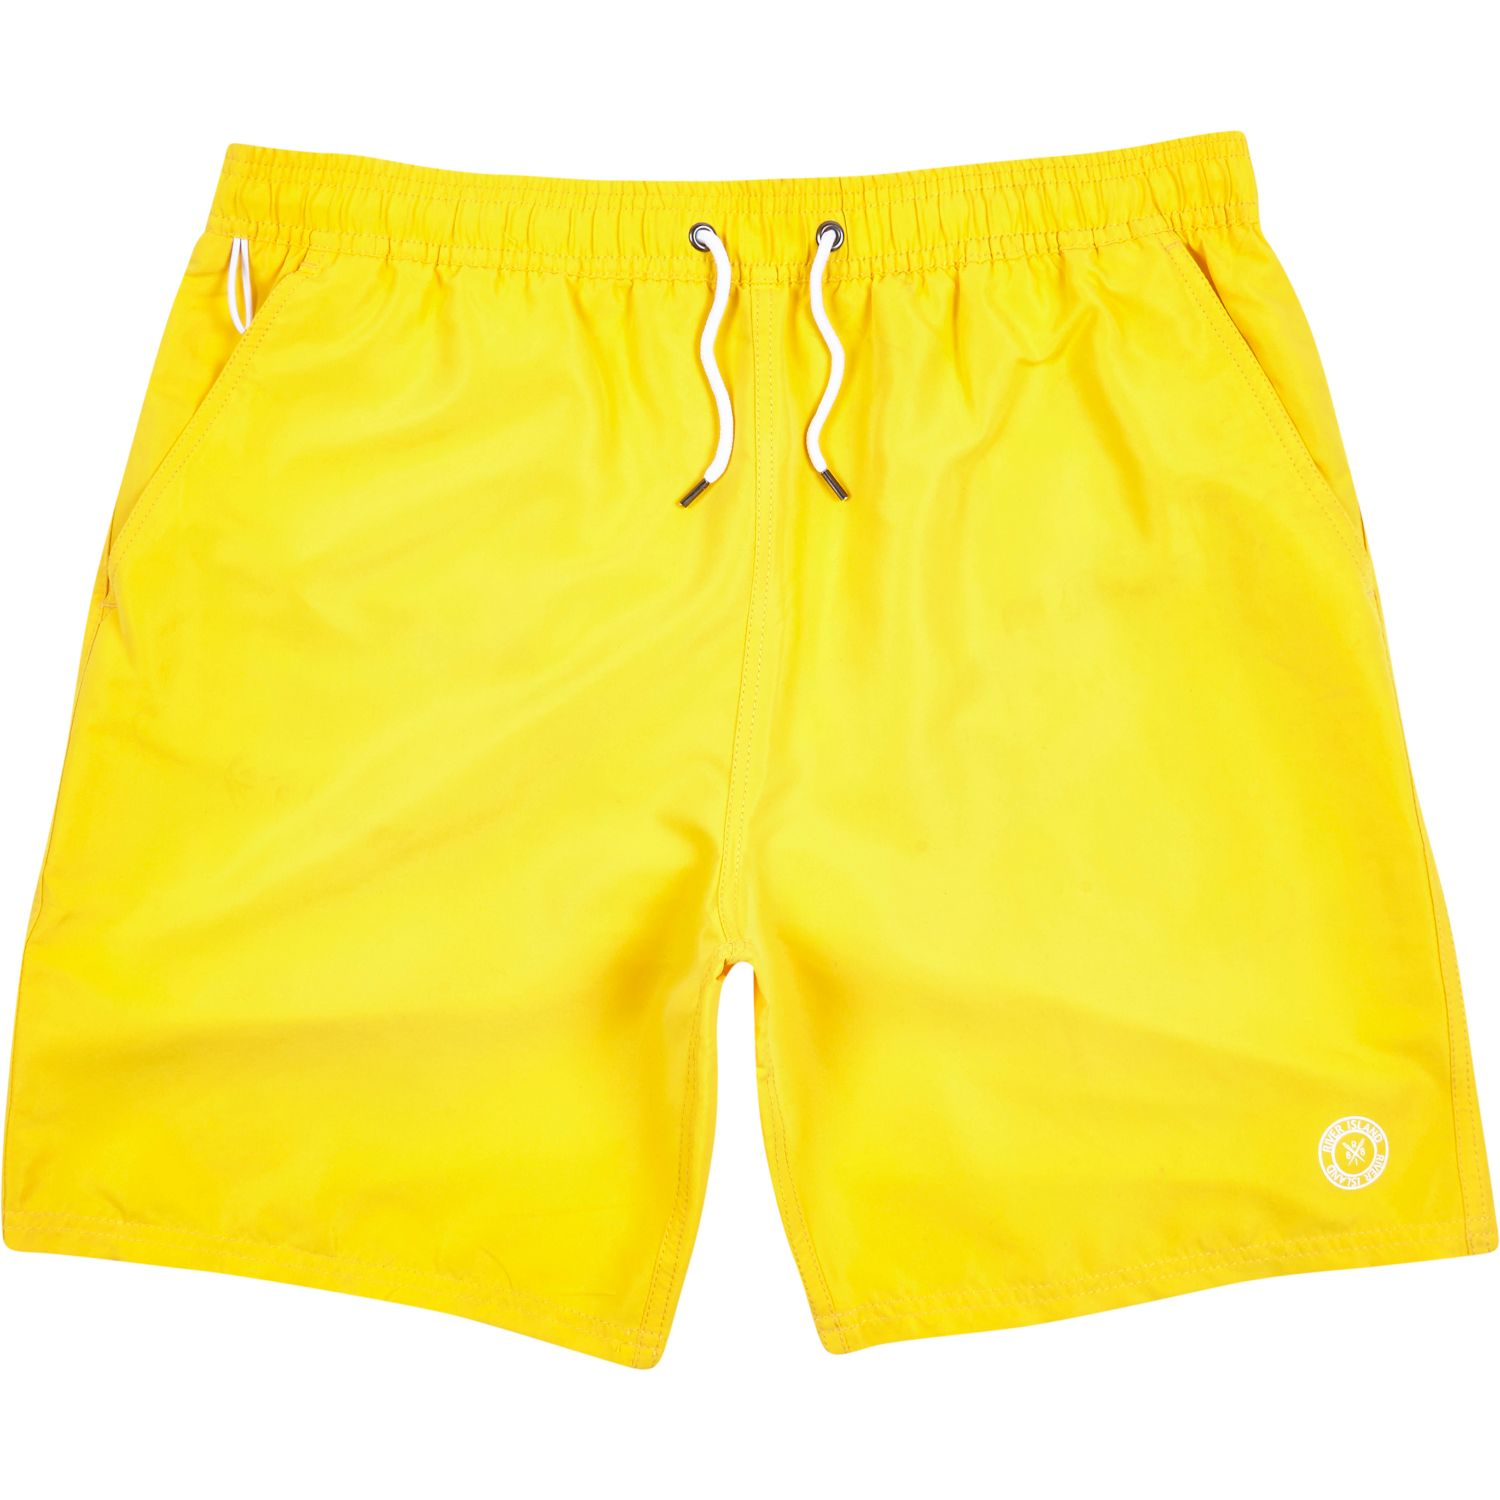 River Island Bright Yellow Mid Length Swim Shorts in ...